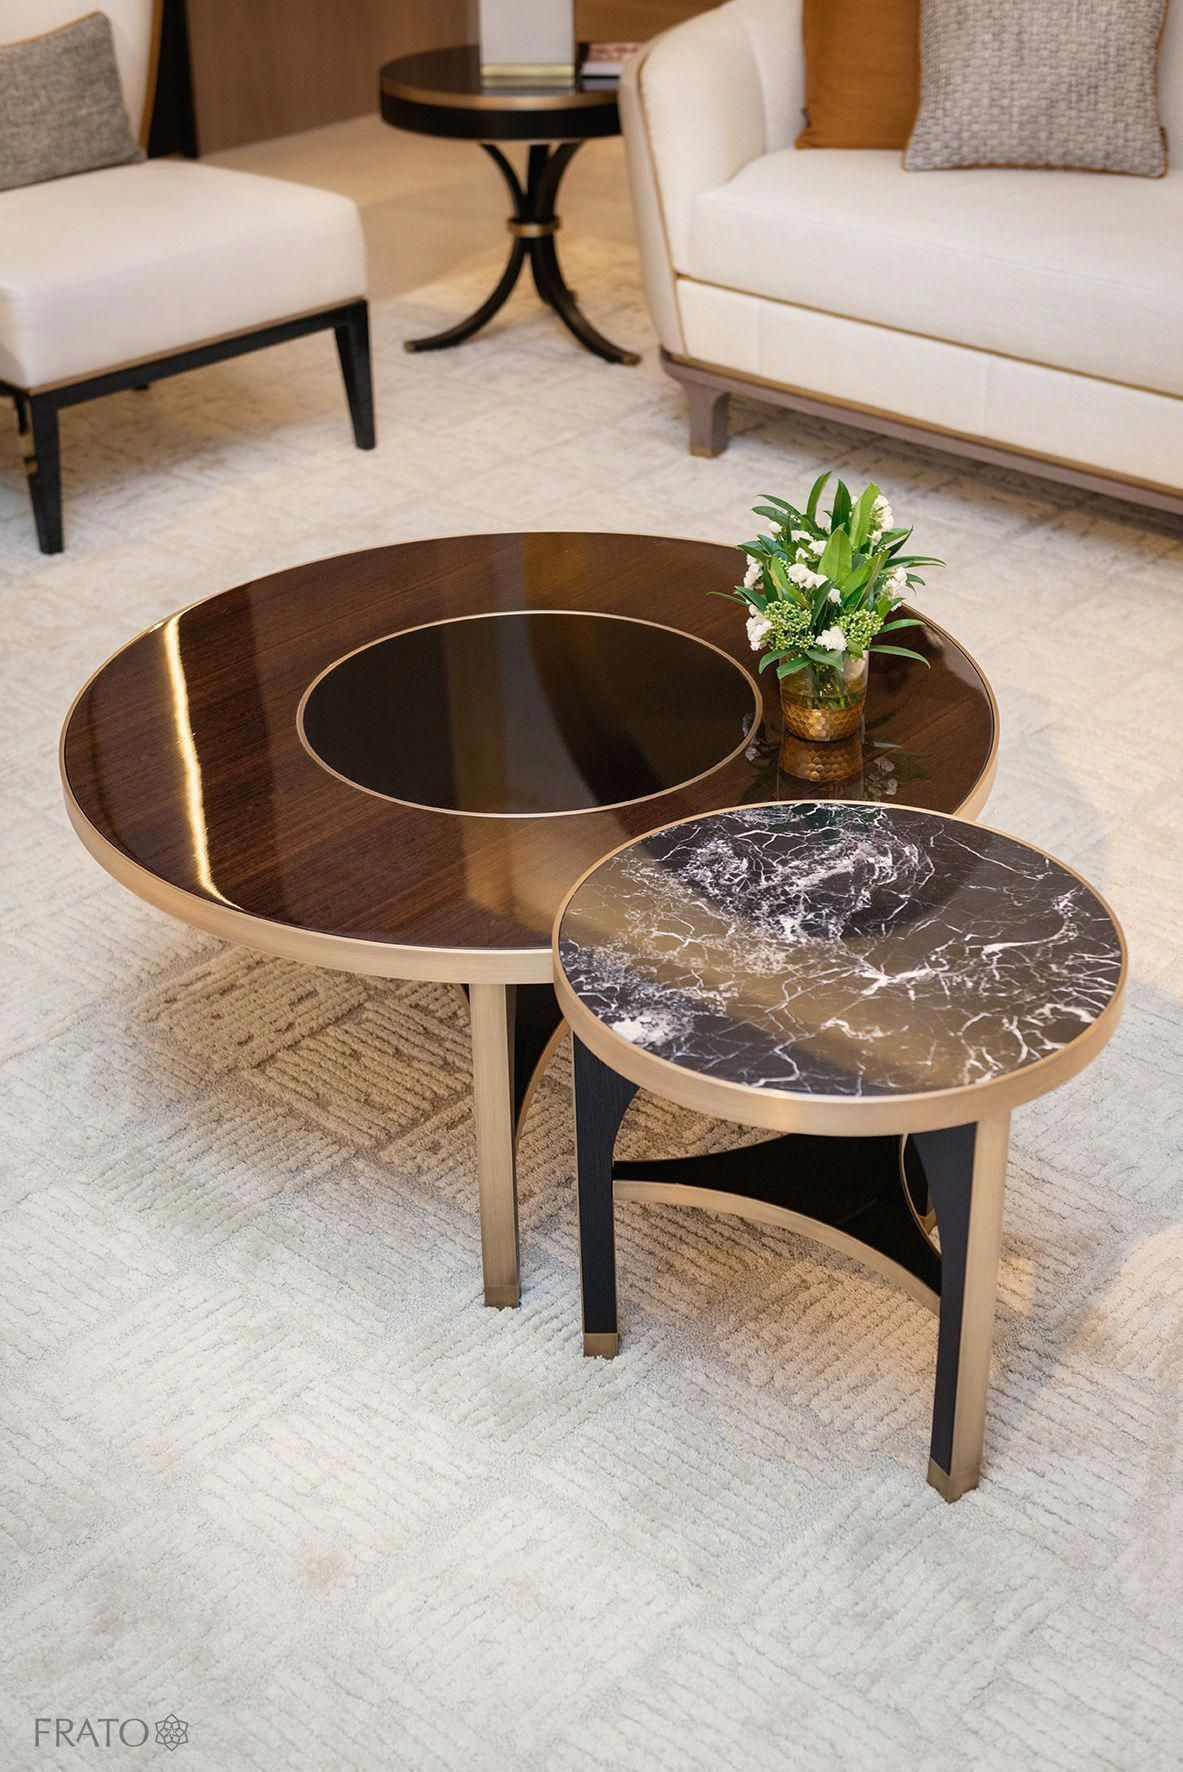 22 Modern Coffee Tables Designs Interesting Best Unique And Classy Center Table Living Room Coffee Table Centre Table Design [ 1772 x 1183 Pixel ]